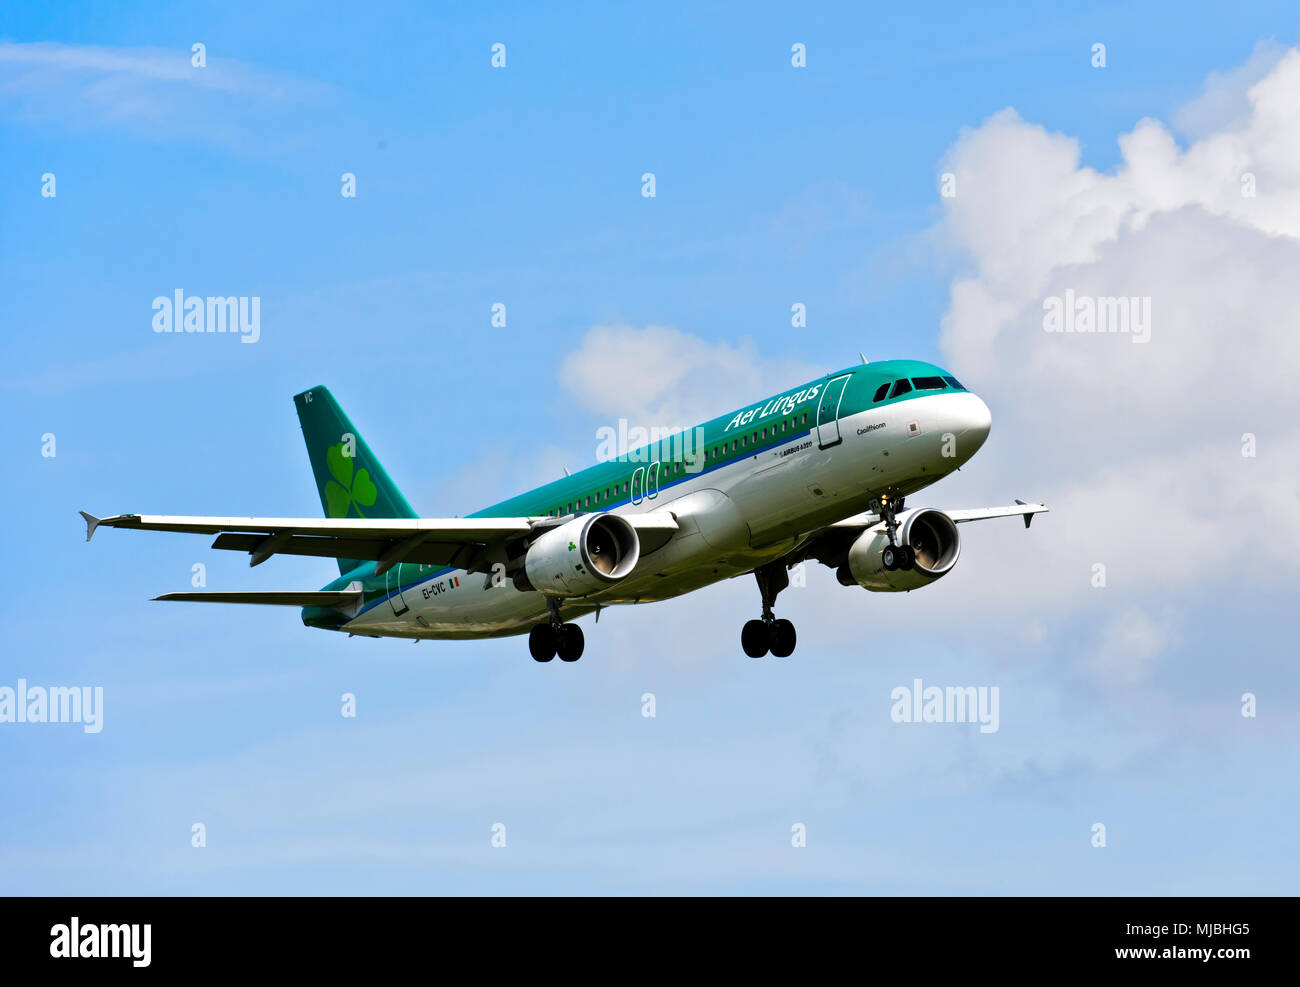 Air Lingus Airbus A320-214 approaching Geneva airport, Switzerland - Stock Image